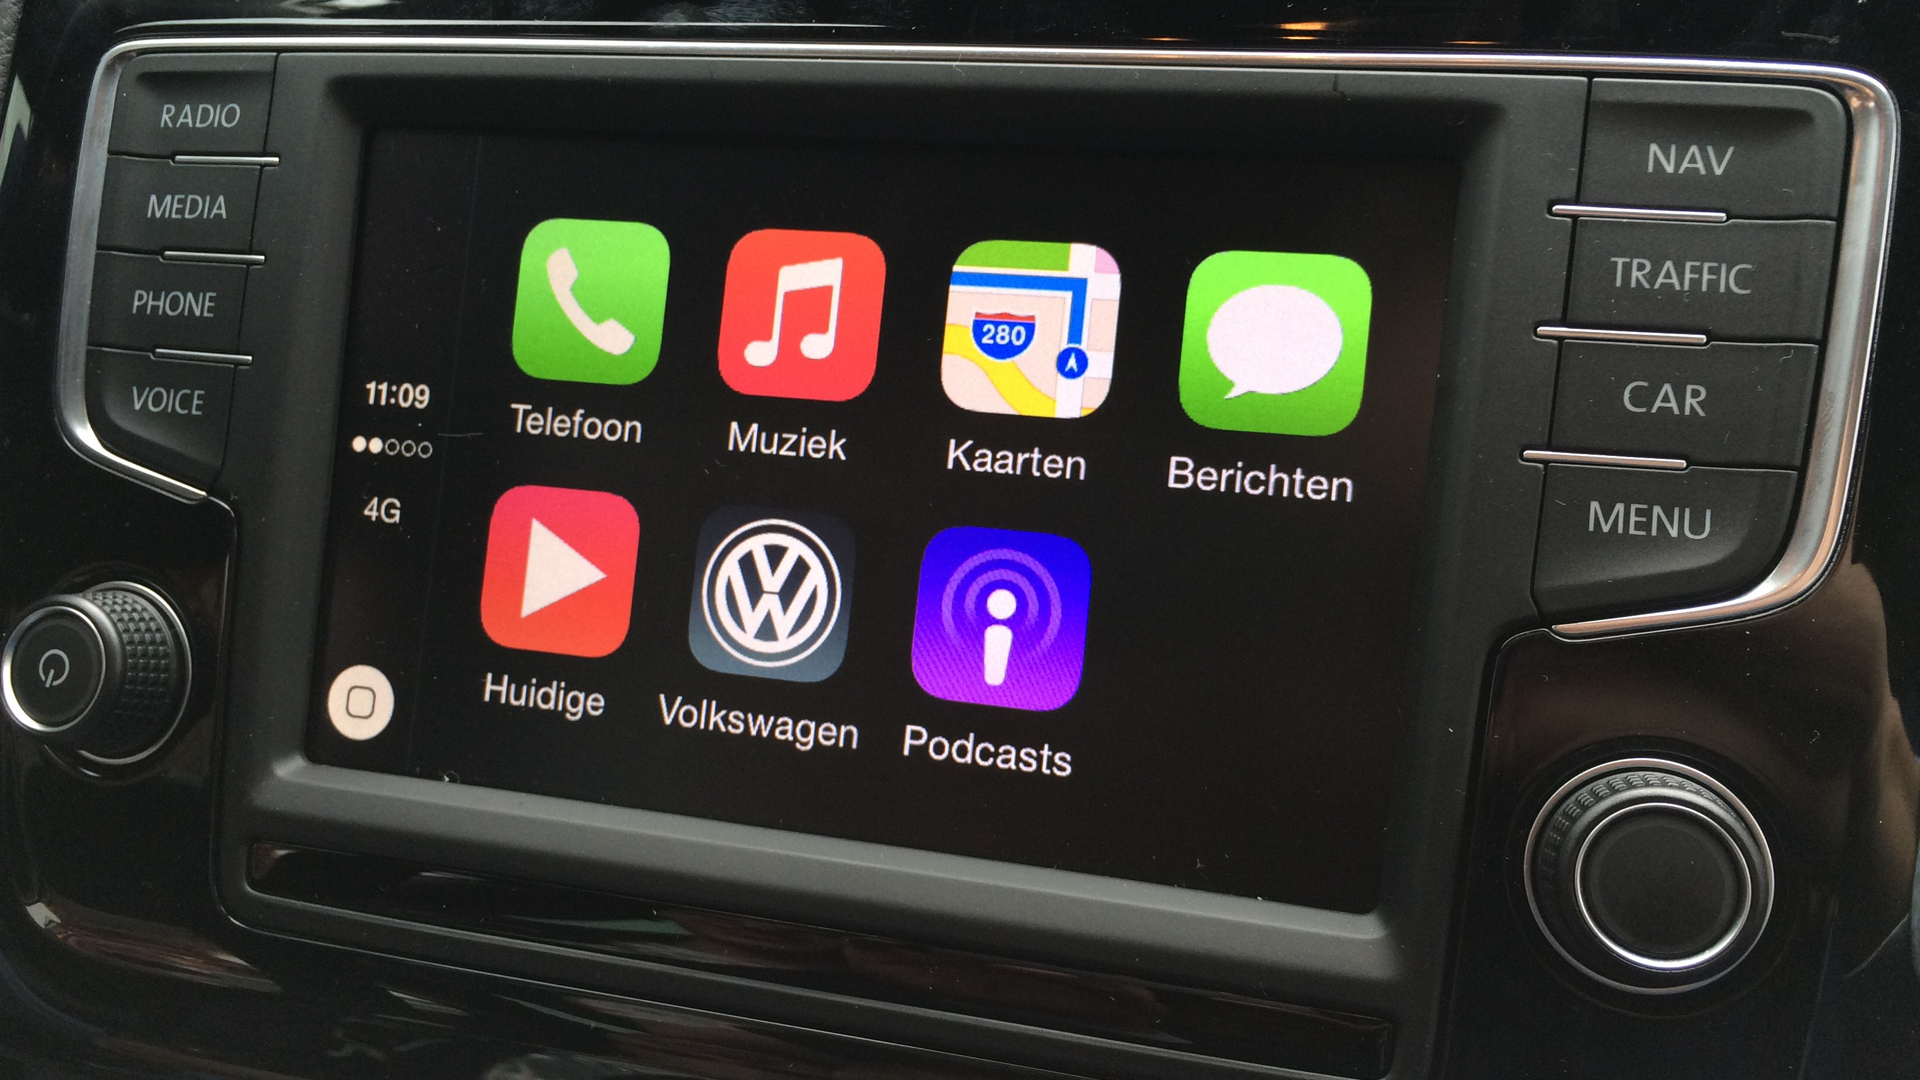 vw-carplay-1-16x9